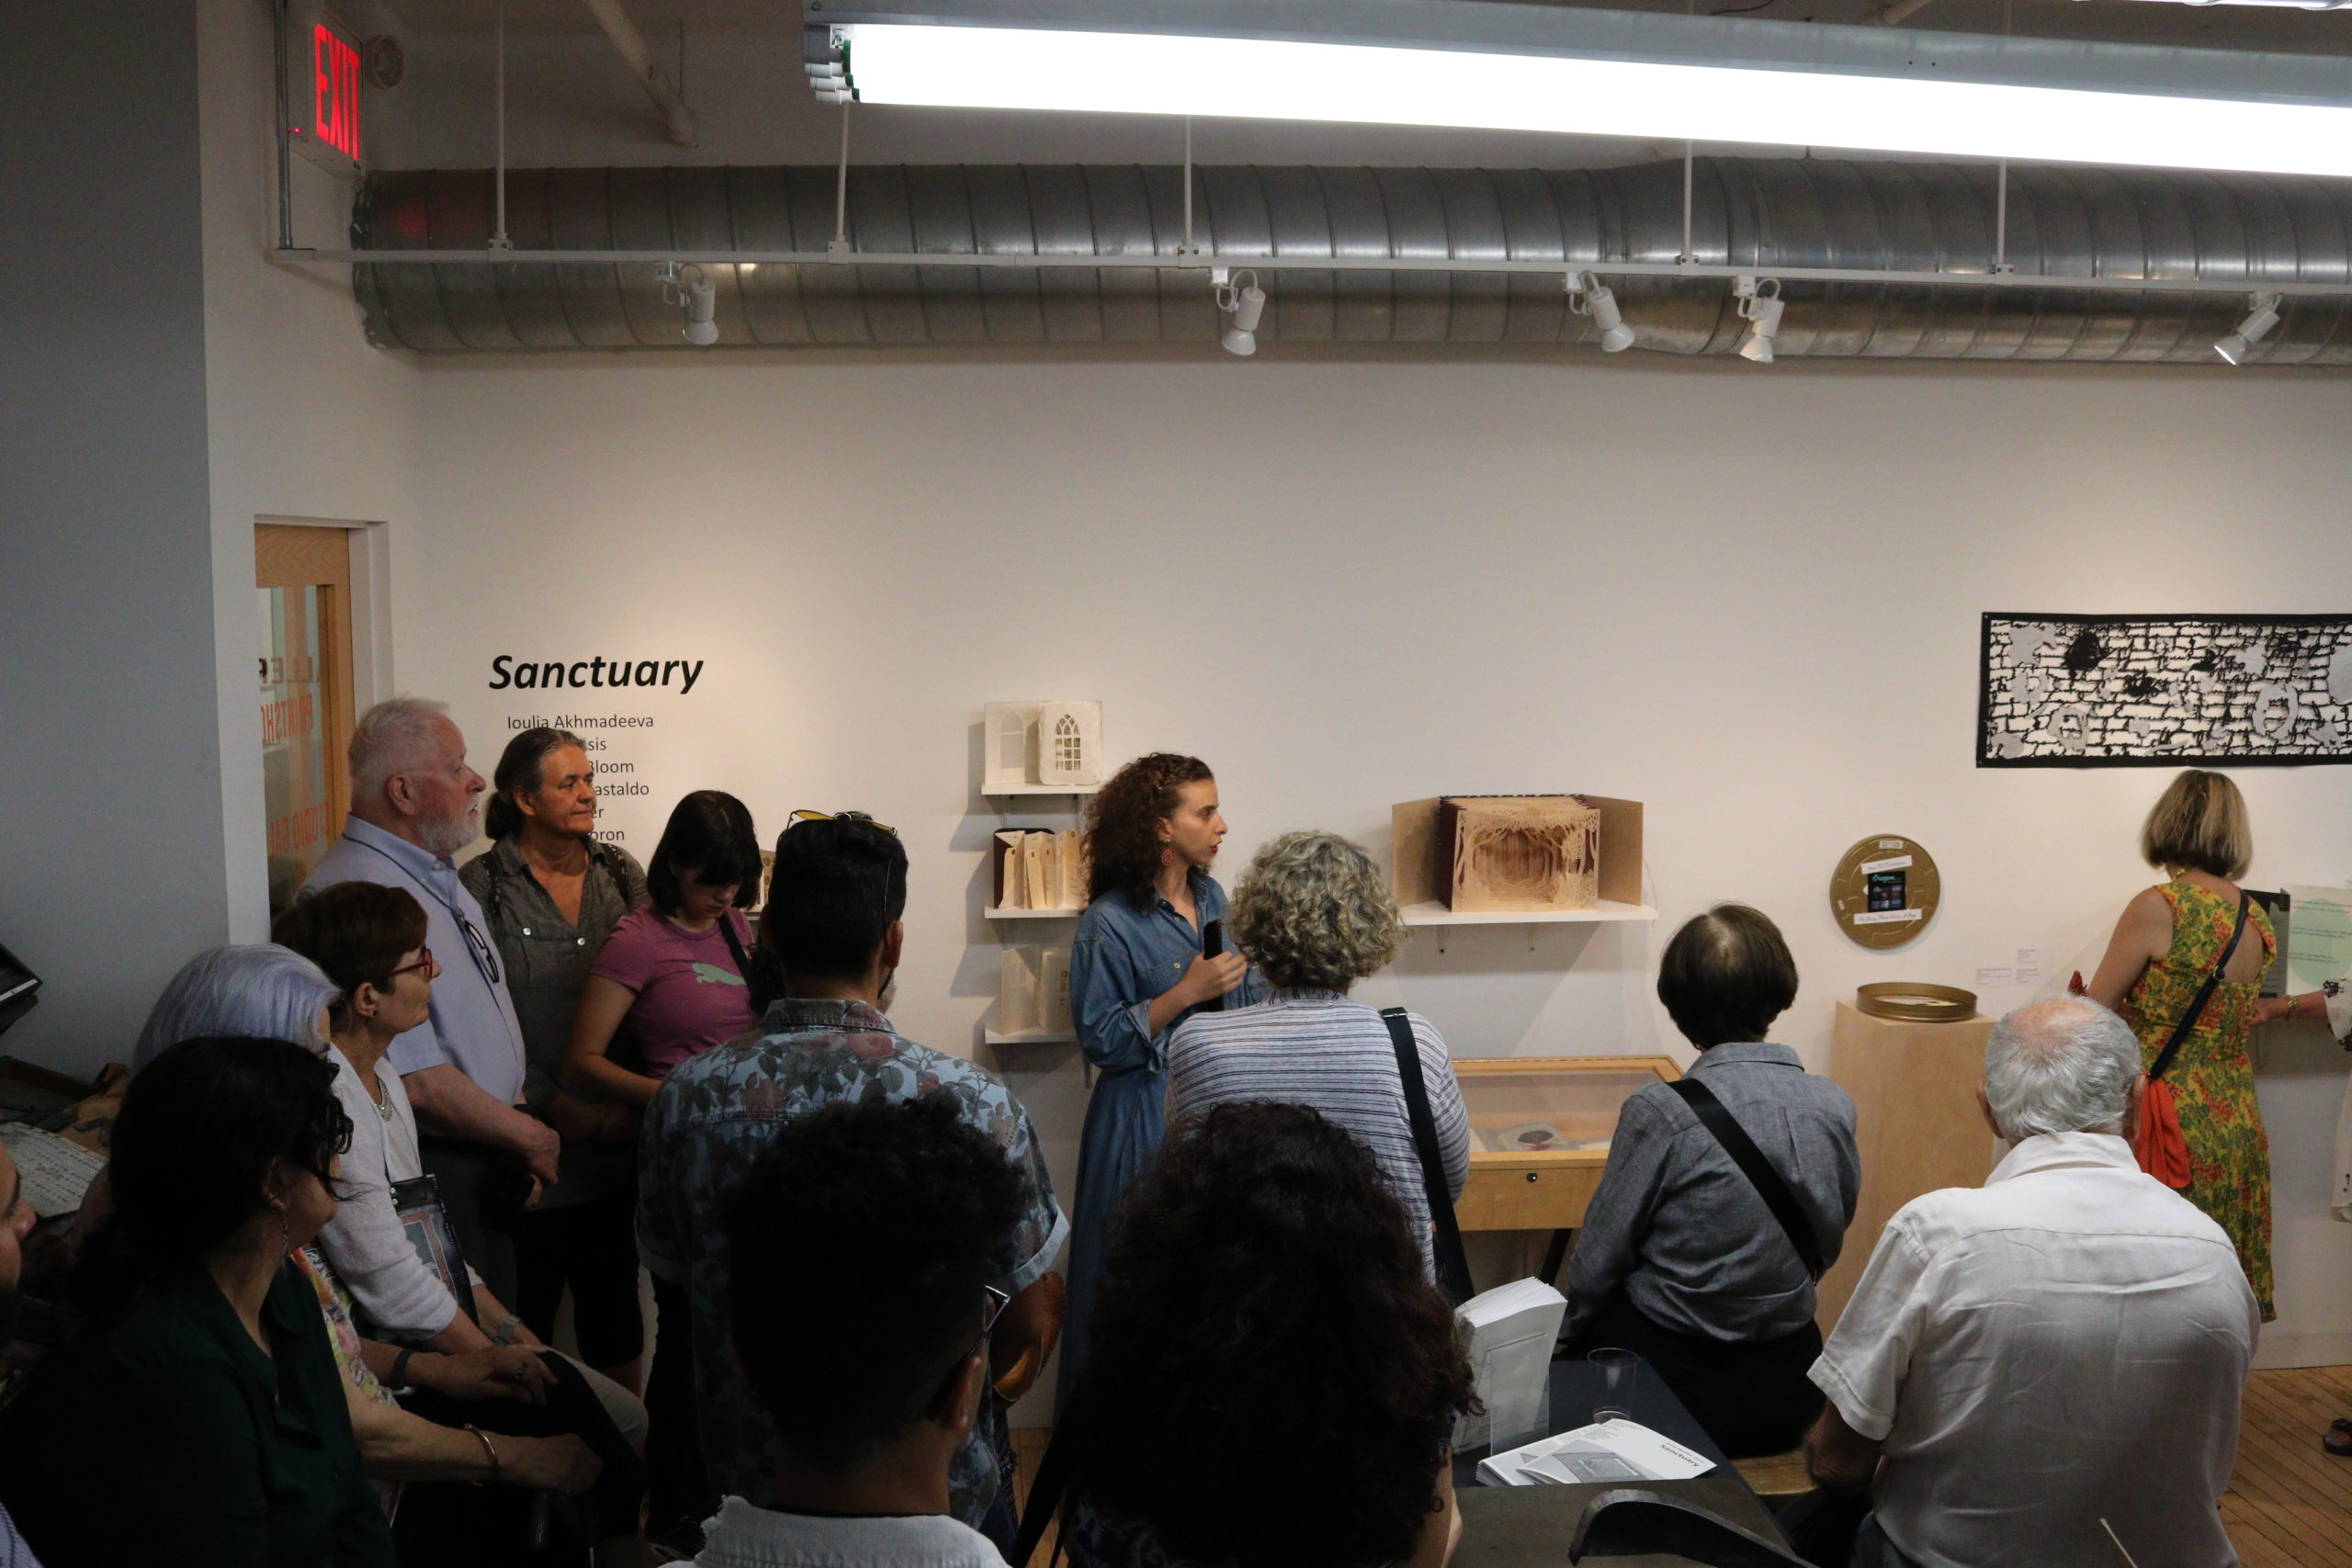 Jenna Hamed gives a tour of the exhibition Sanctuary